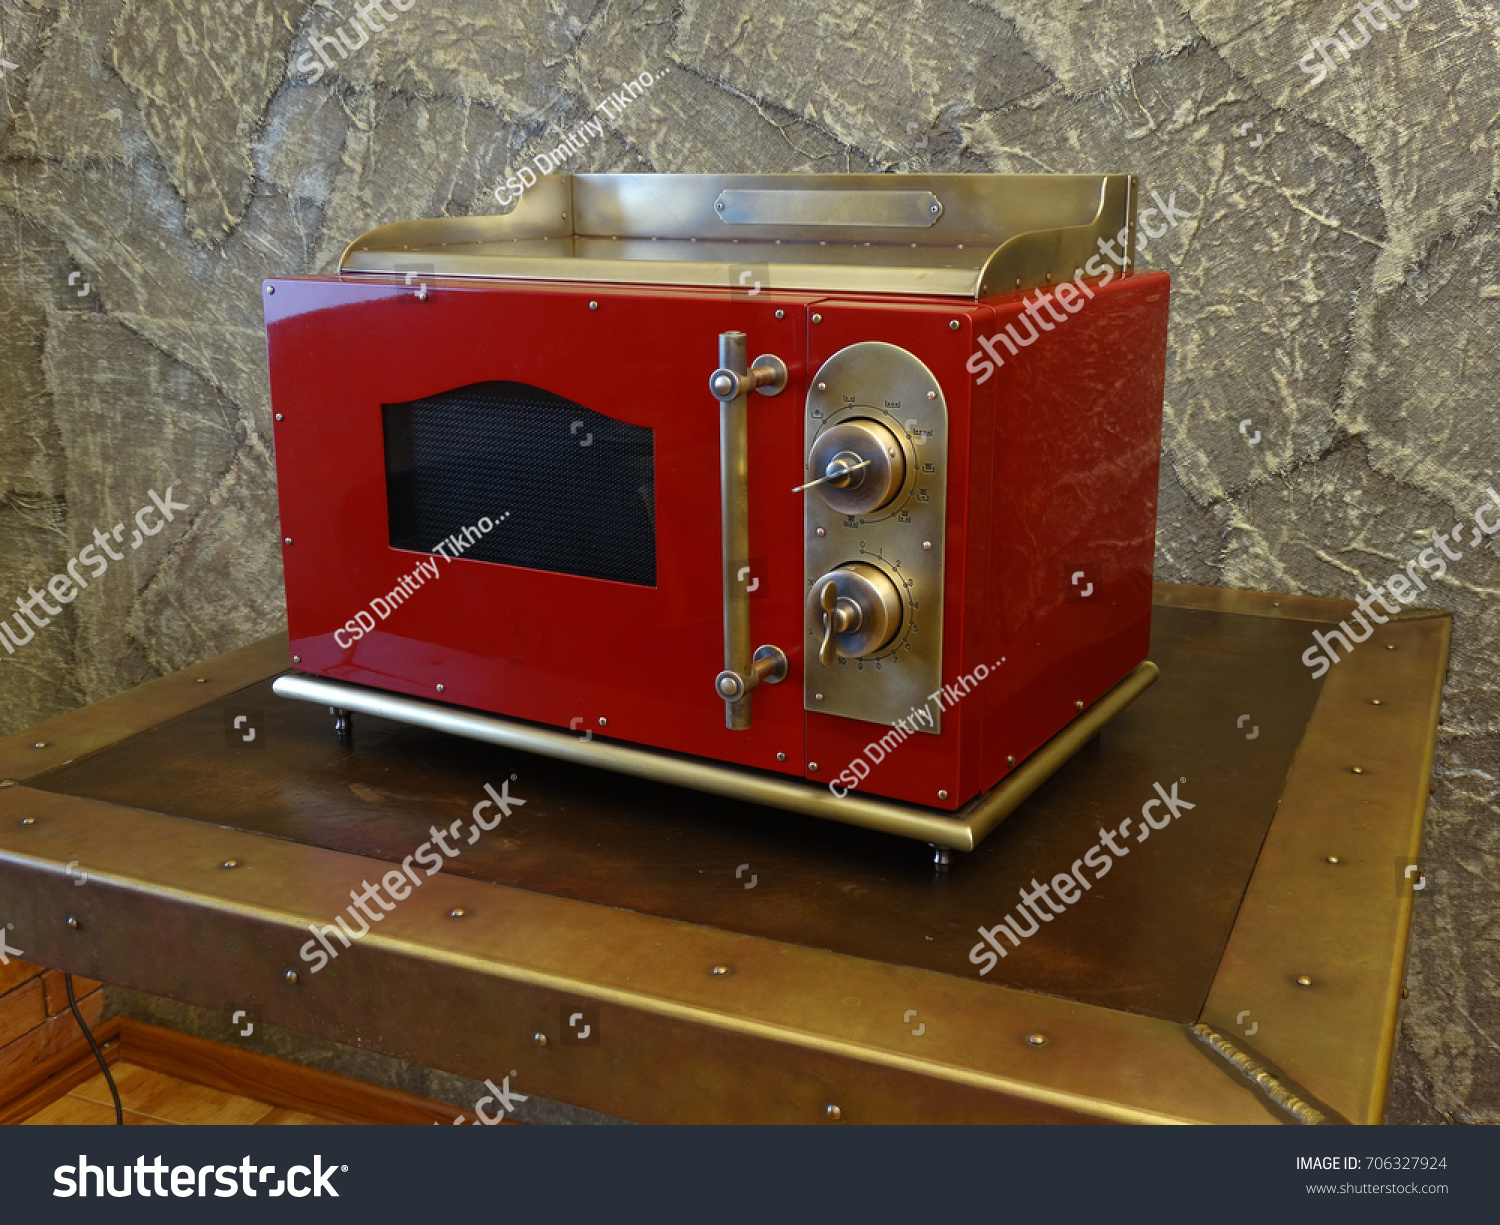 https www shutterstock com image photo red copper microwave oven retro style 706327924